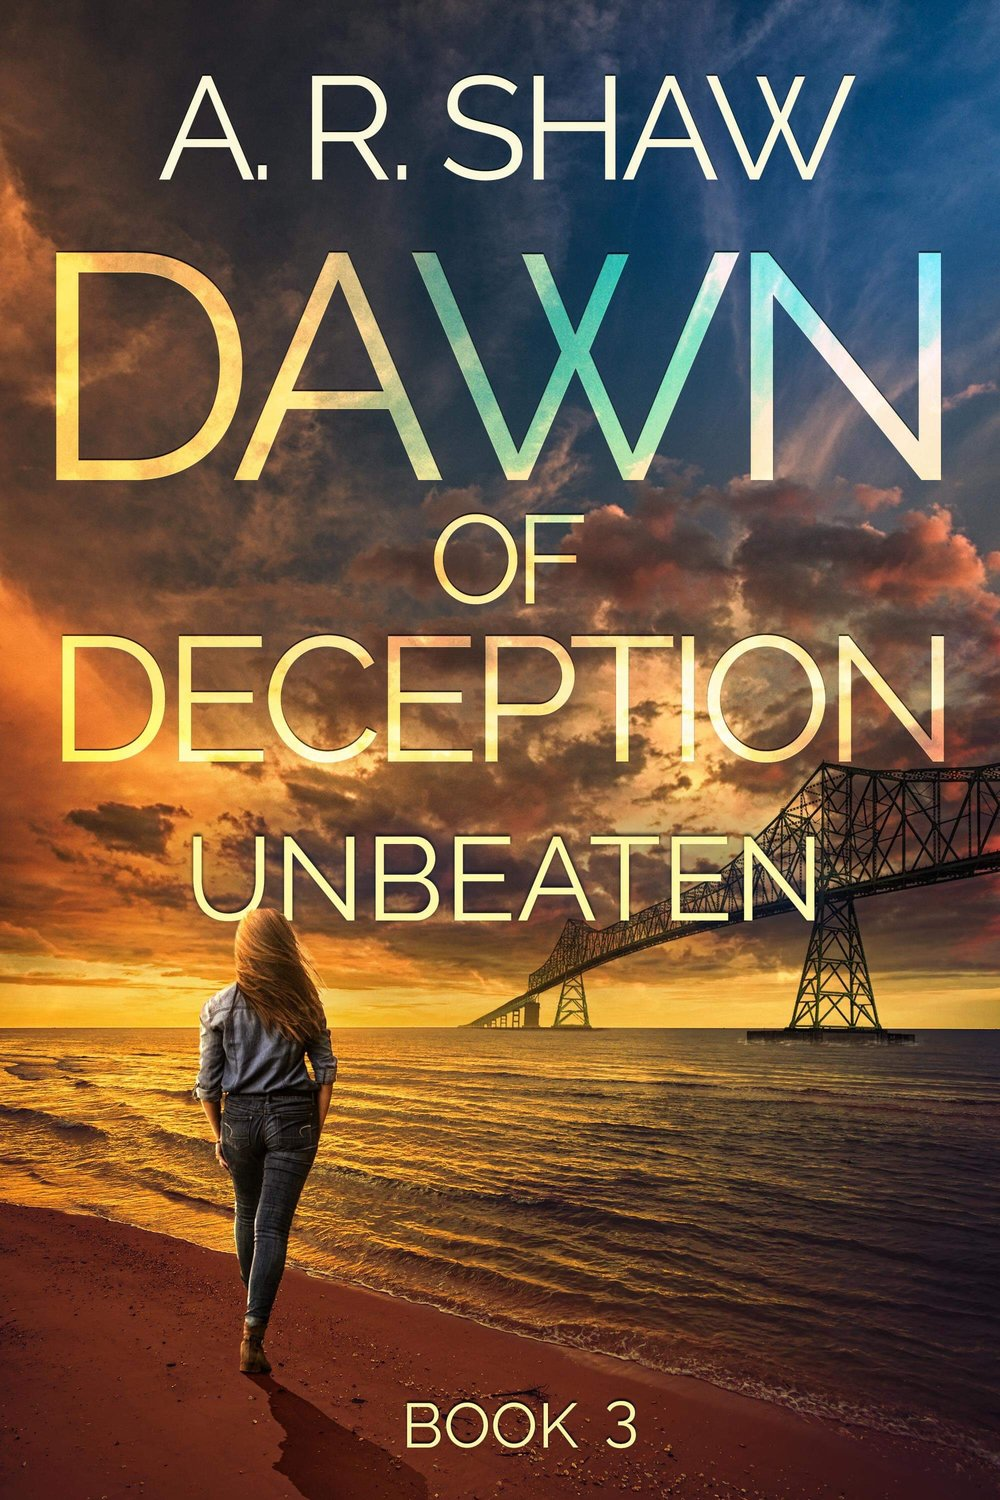 Unbeaten: Dawn of Deception Book 3 - Description from Book 1: In a post-apocalyptic world, Sloane Delaney struggles to keep her daughters safe. With all her neighbors gone and her abusive second husband dead, Sloane and her daughters, Mae and Wren, maintain a dangerous charade to keep looters at bay from their neighborhood. When young Nicole shows up on their doorstep, nearly dead from dehydration and starvation as a result of her father's growing paranoia, she joins the determined group as they adjust to life without most of the luxuries they had previously taken for granted. Aided by a pack of abandoned dogs, the women are able to project an image of an occupied and active neighborhood until corrupt FEMA agents arrive on the scene, threatening their hard-won sense of security. Fleeing their now-unsafe home, Sloane and her girls head for the woods and an abandoned old house Sloane is sure will be a safe haven for at least a few days. She doesn't count on the handsome and helpful Dr. Kent having also taken refuge there. With her girls' lives on the line, can Sloane learn to trust again in this dangerous new world?